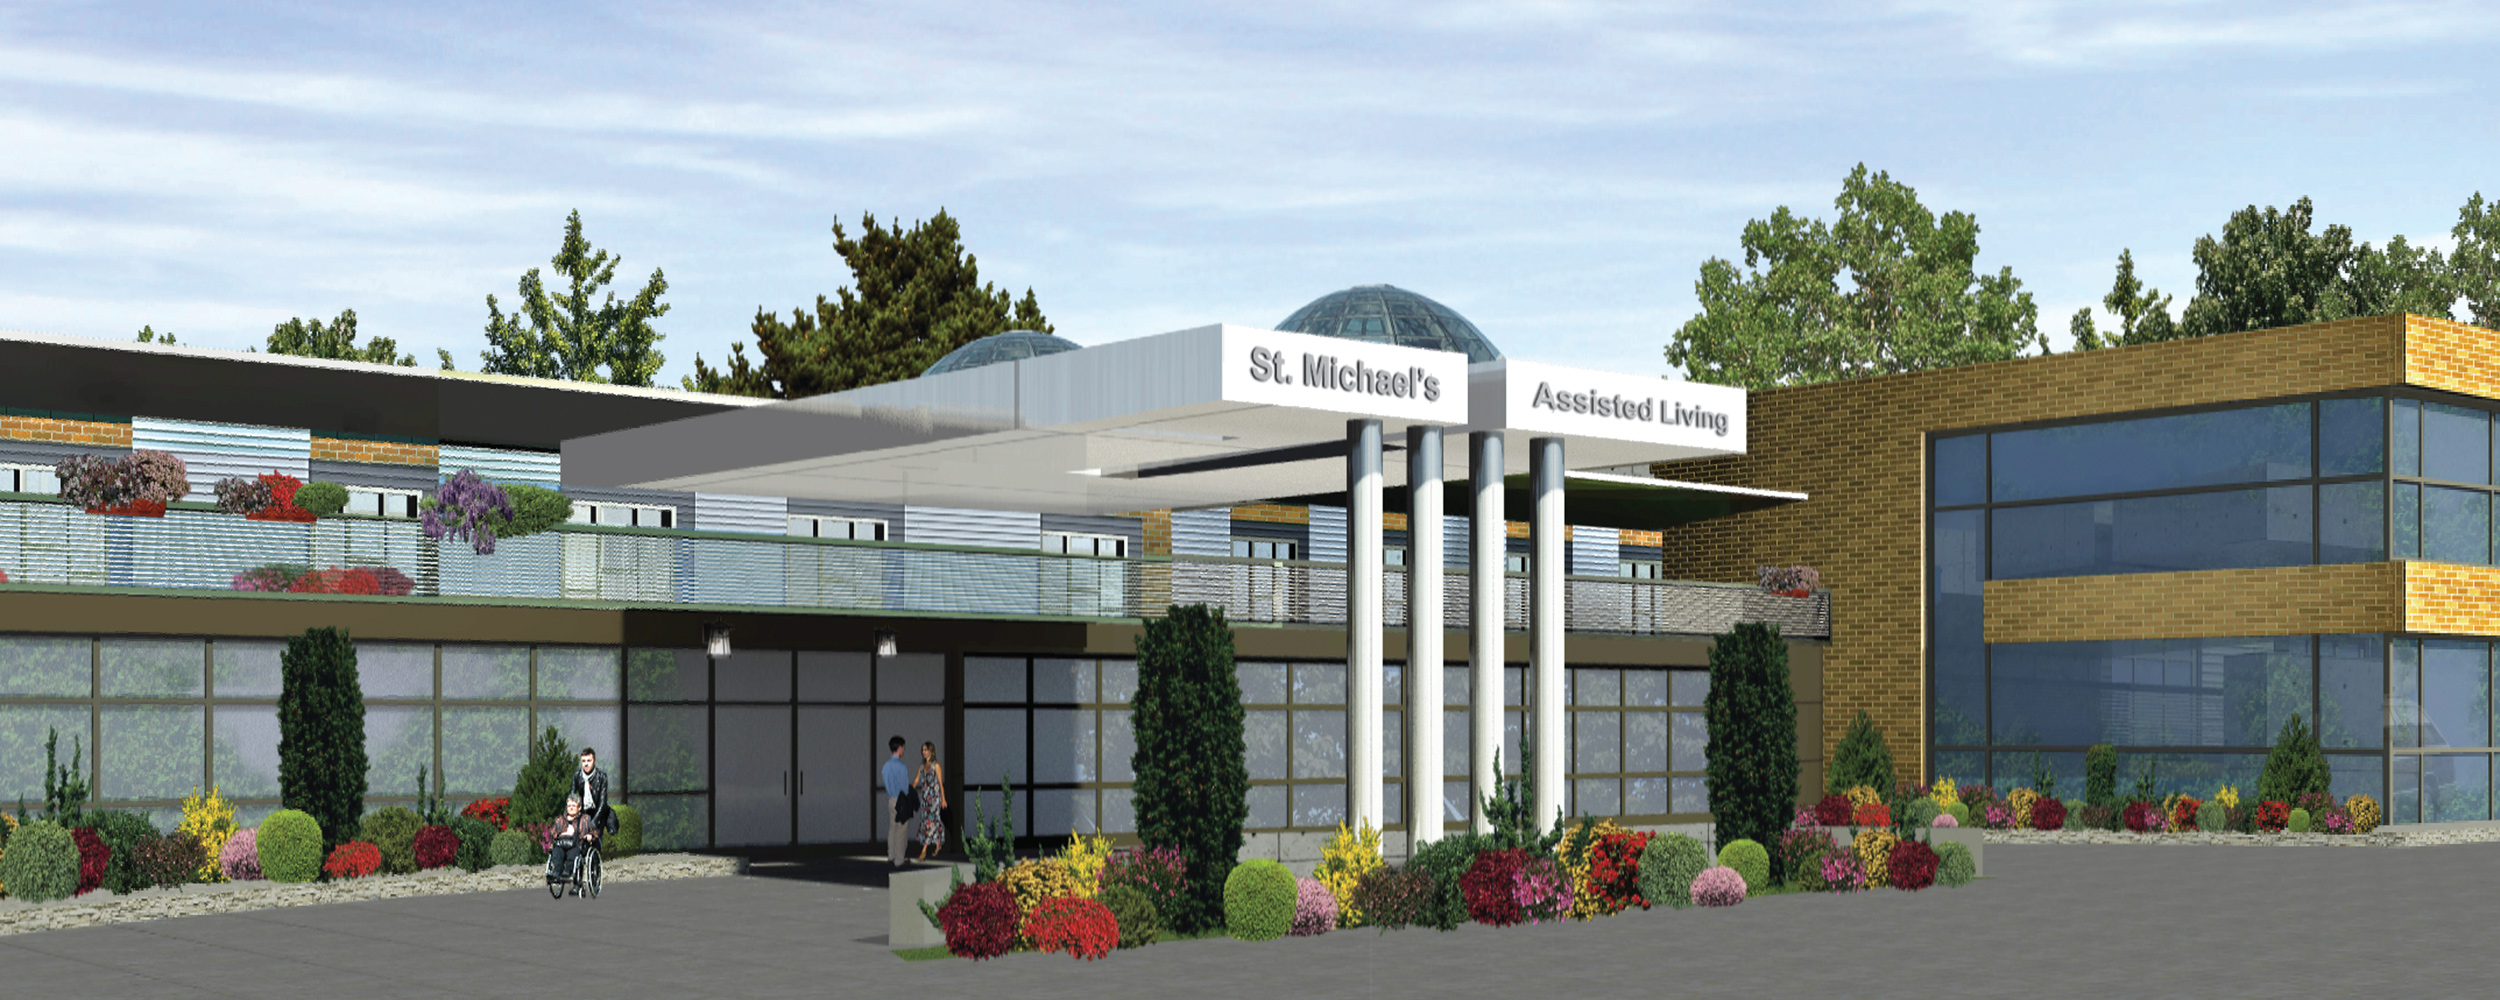 Assisted Living Entrance